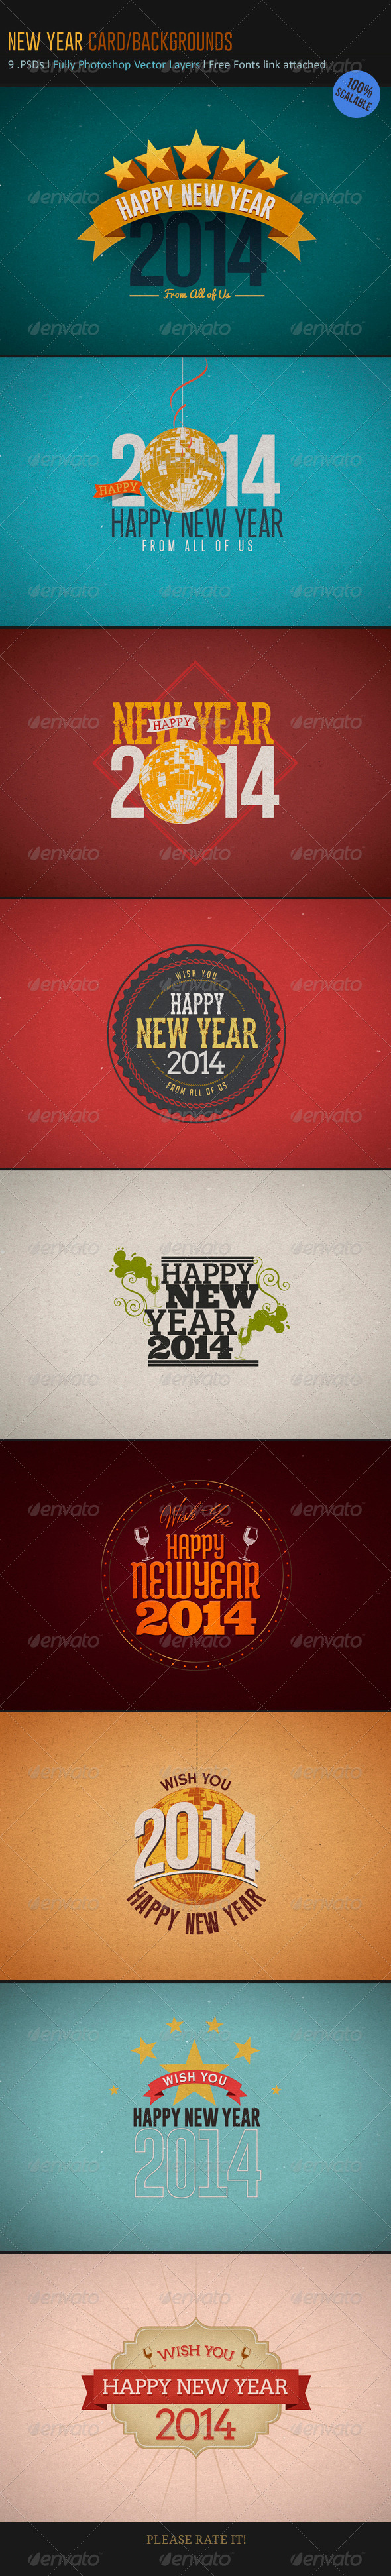 New Year Card-Backgrounds - Backgrounds Graphics